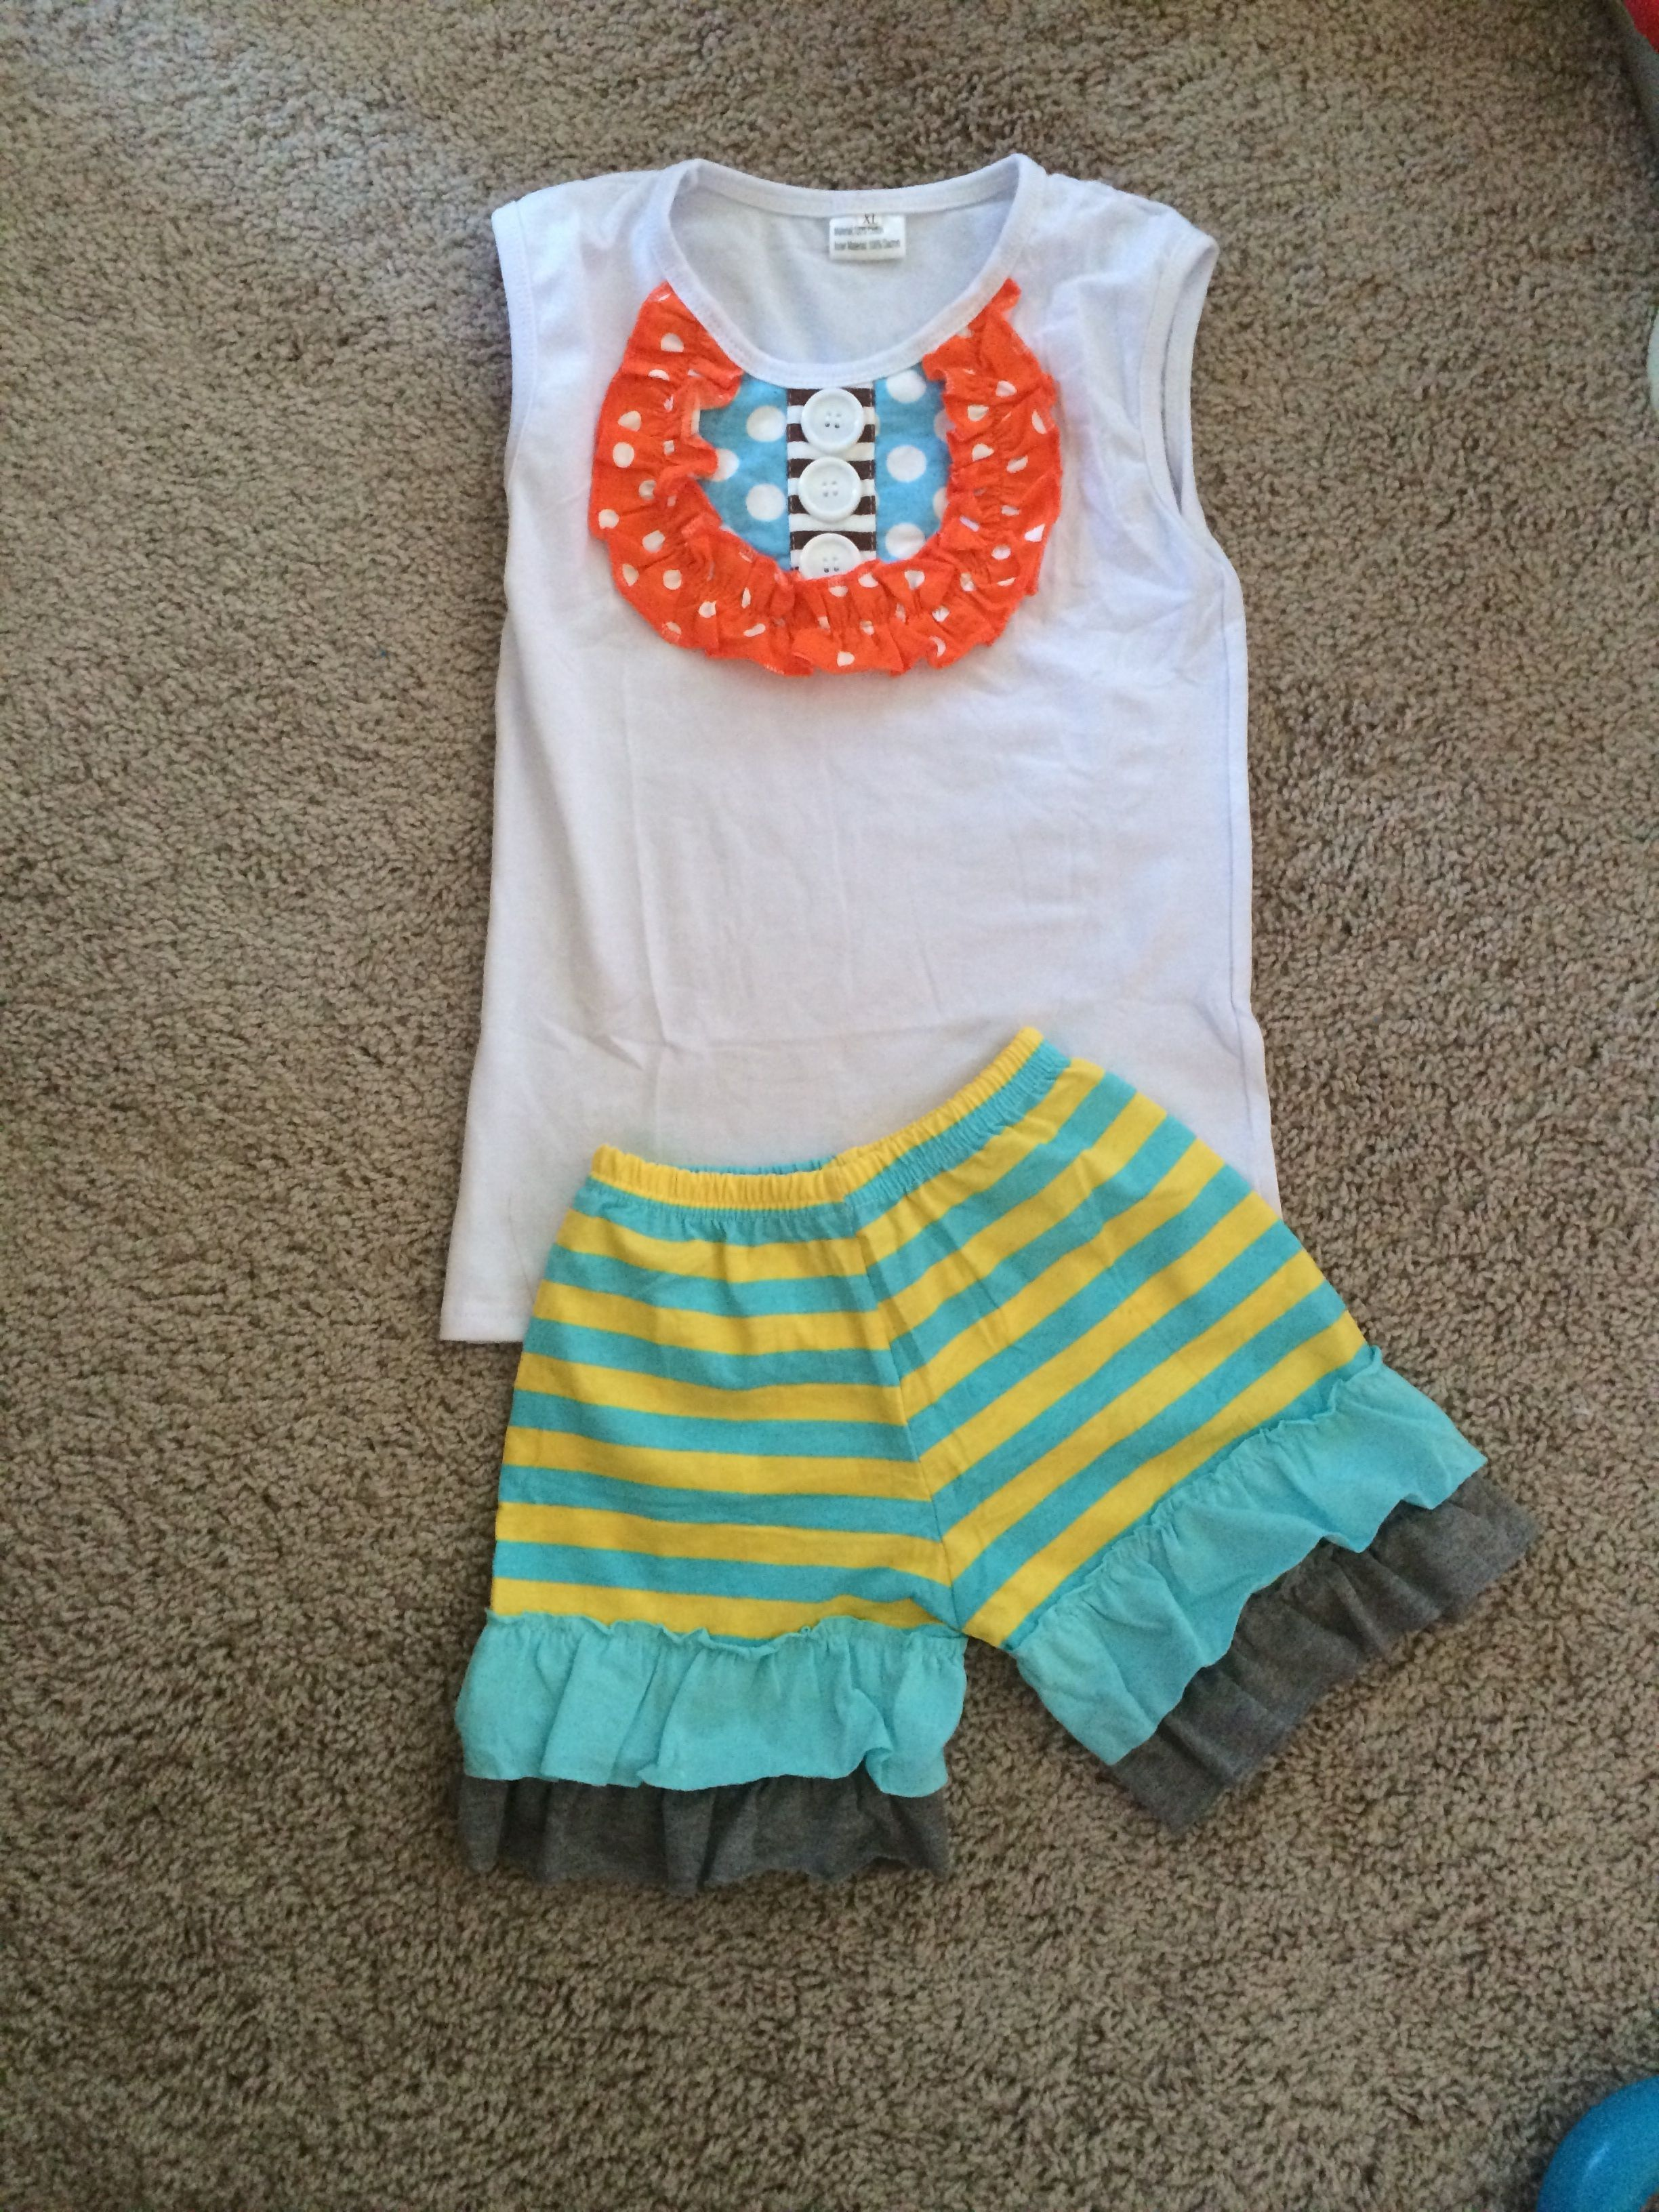 Cute Fun Affordable Baby Girls Clothes And Accessories A Delightful